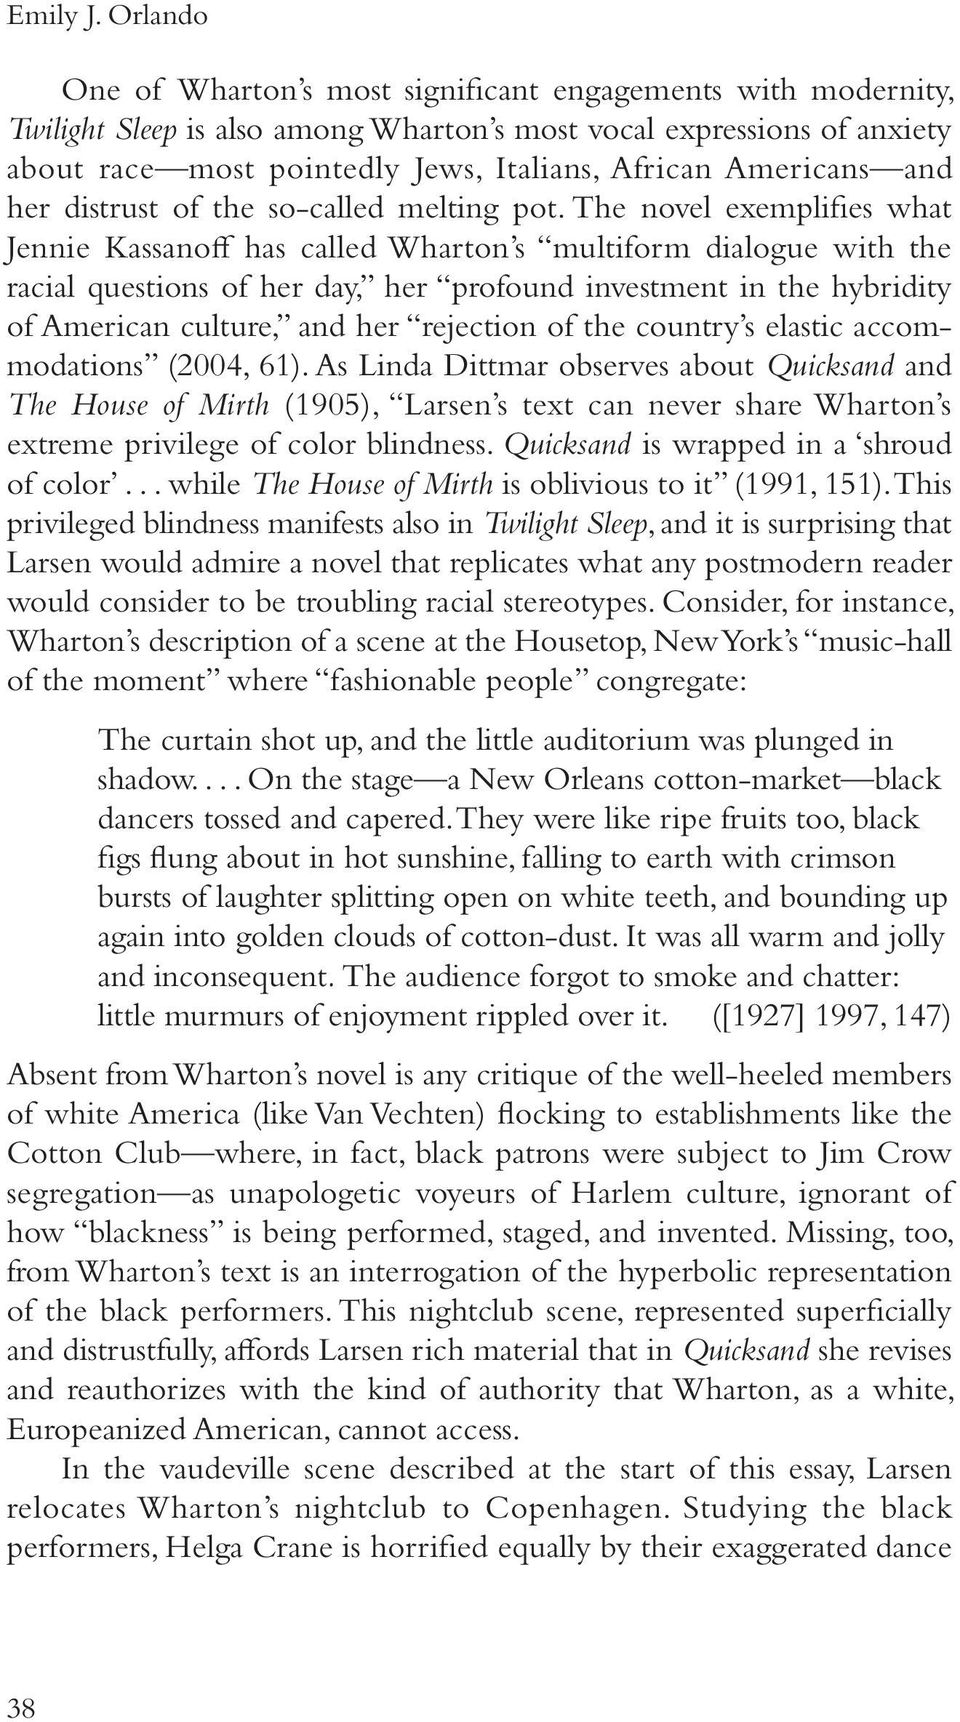 """larsen quicksand essay Write about a major theme in nella larsen's """"quicksand"""" please use critical scholarly sources, such as books and peer reviewed journals, to examine the theme discuss the theme with new and original ideas make a solid thesis and use strong supportive arguments write the paper with the quality of publishable work."""